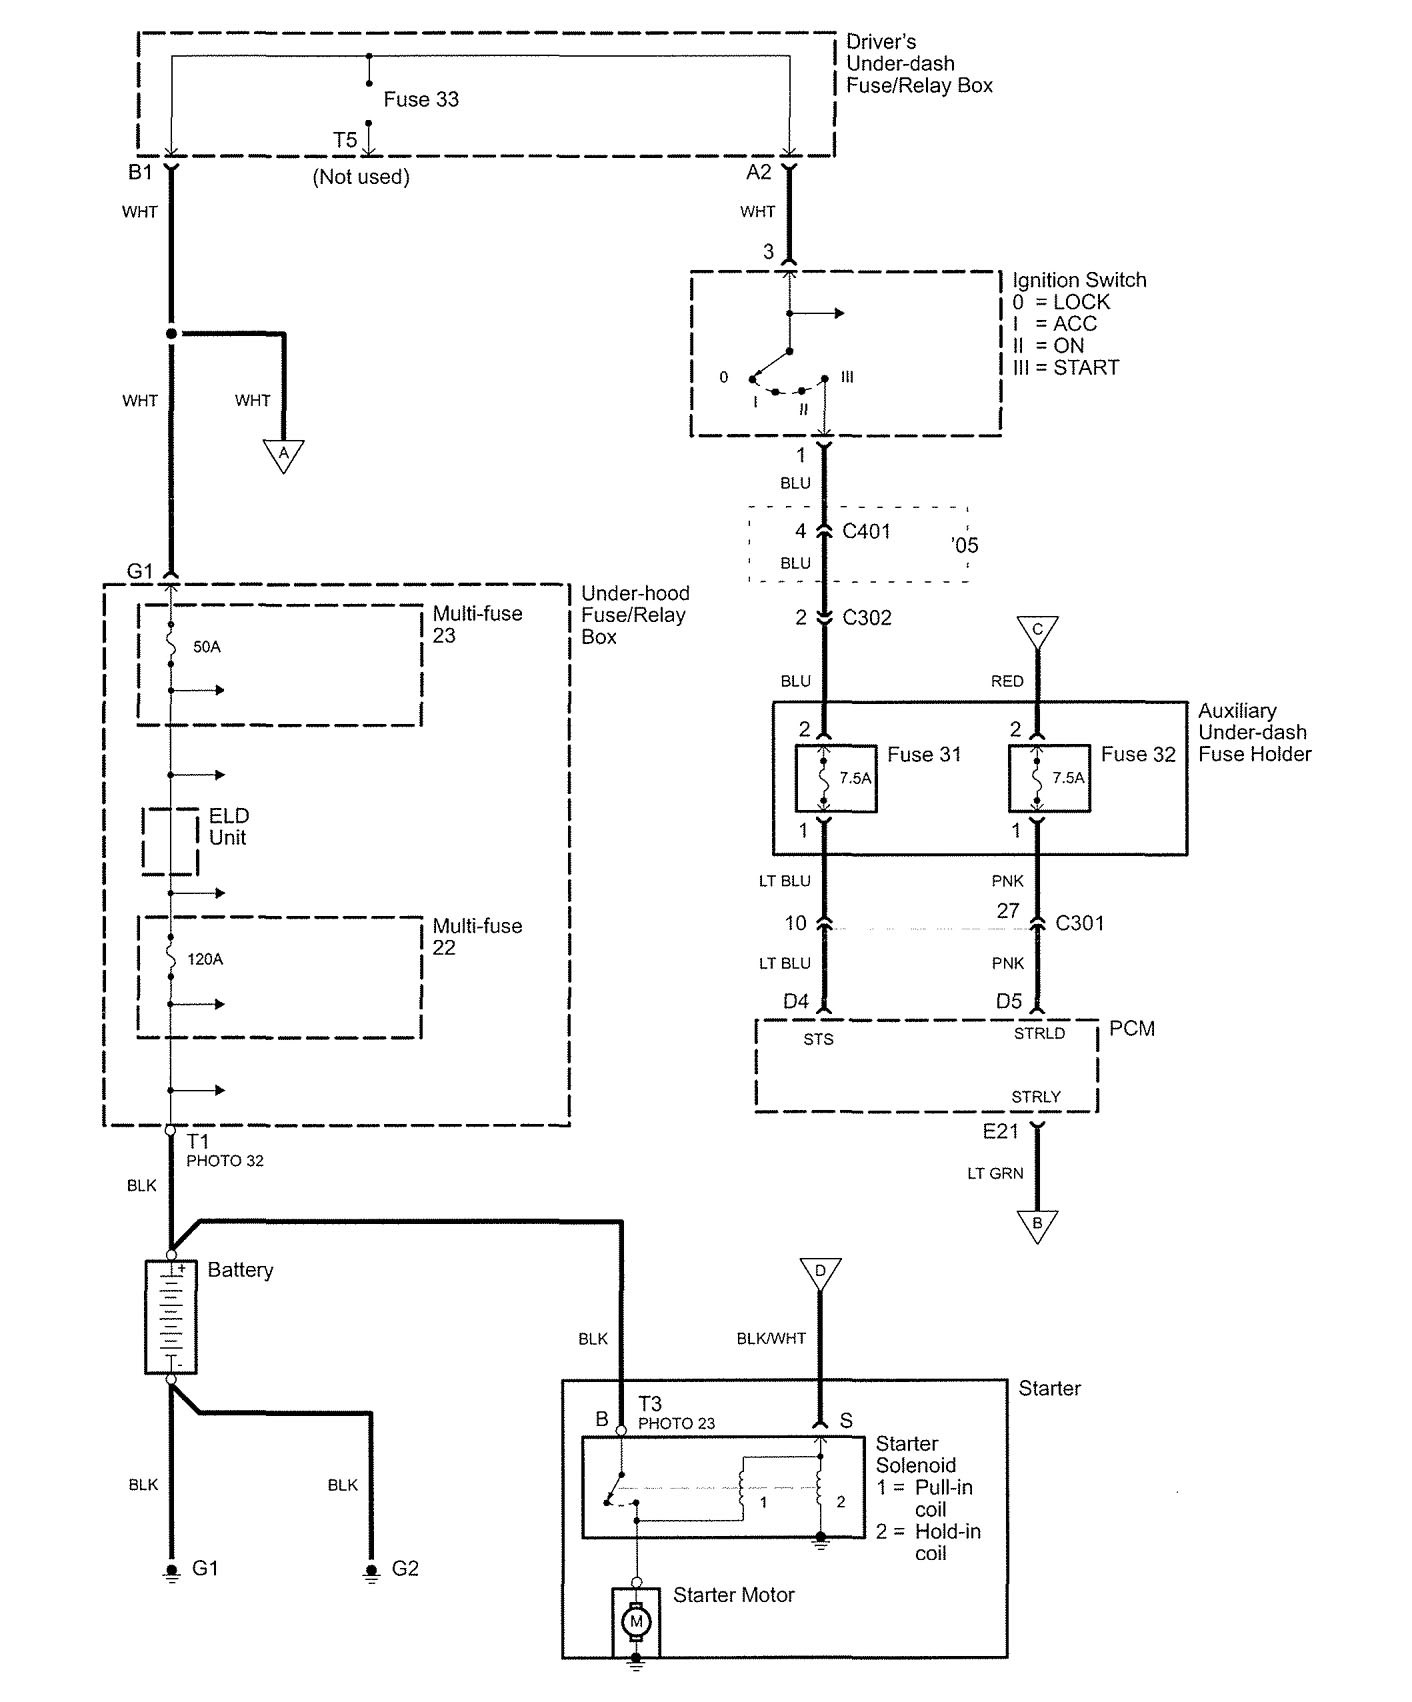 2006 Acura Rl Wiring Trusted Diagram For 1997 Diagrams Starting Carknowledge Custom